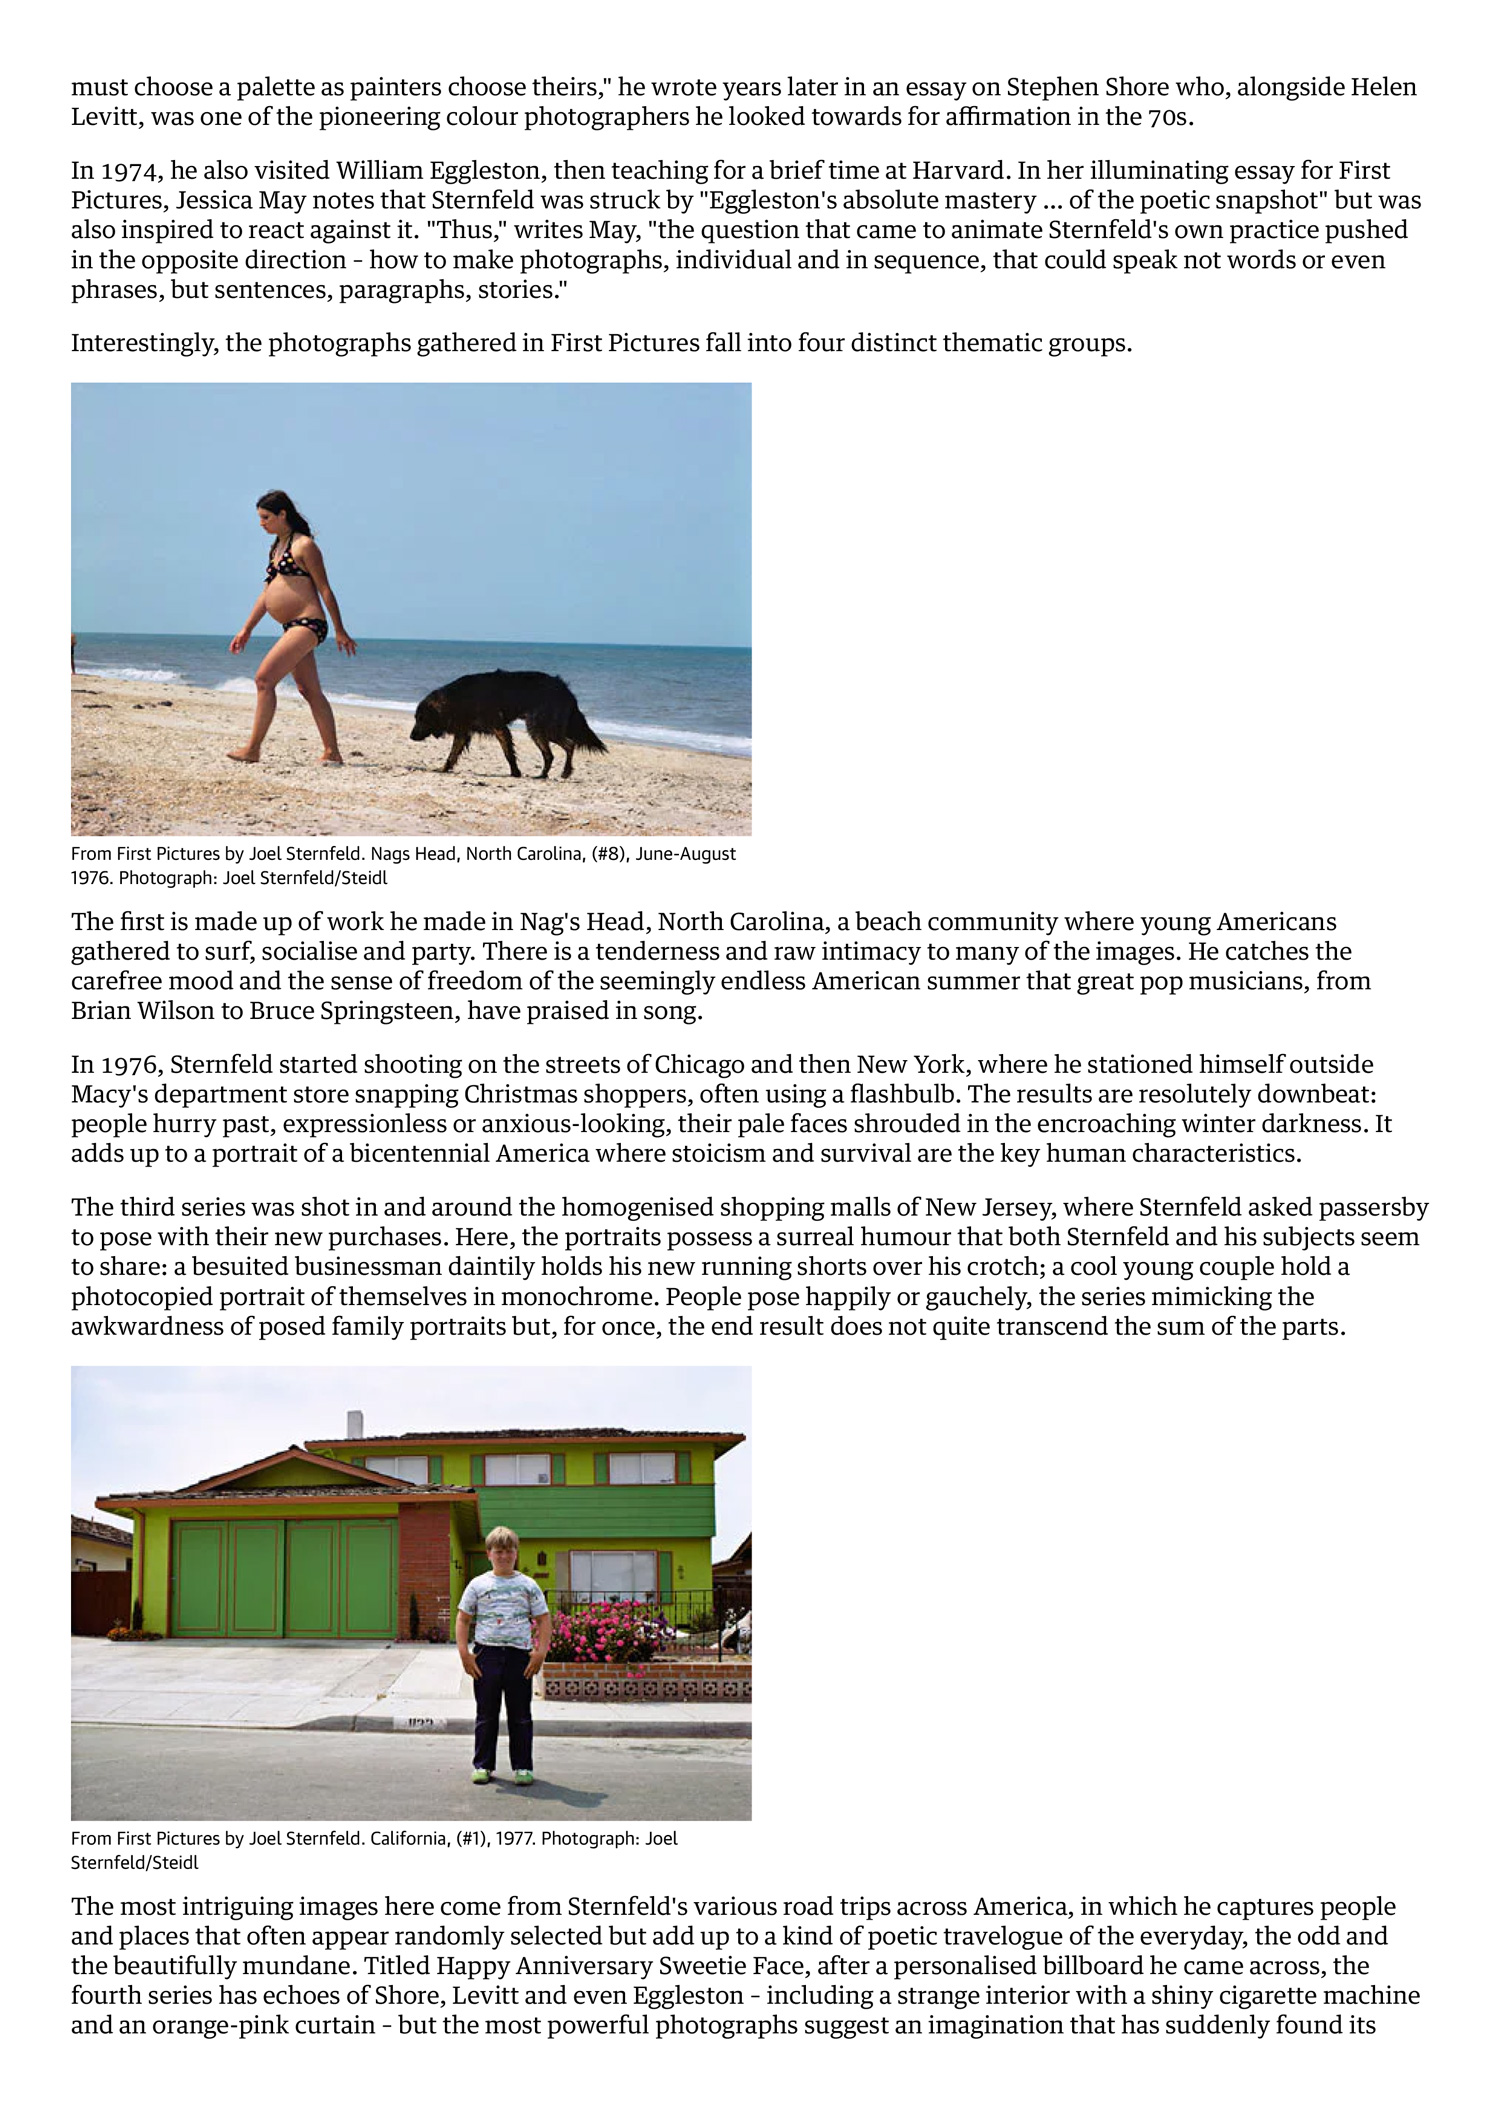 Joel-Sternfeld's-First-Pictures--the-op...career-_-Art-and-design-_-The-Guardian-2.jpg